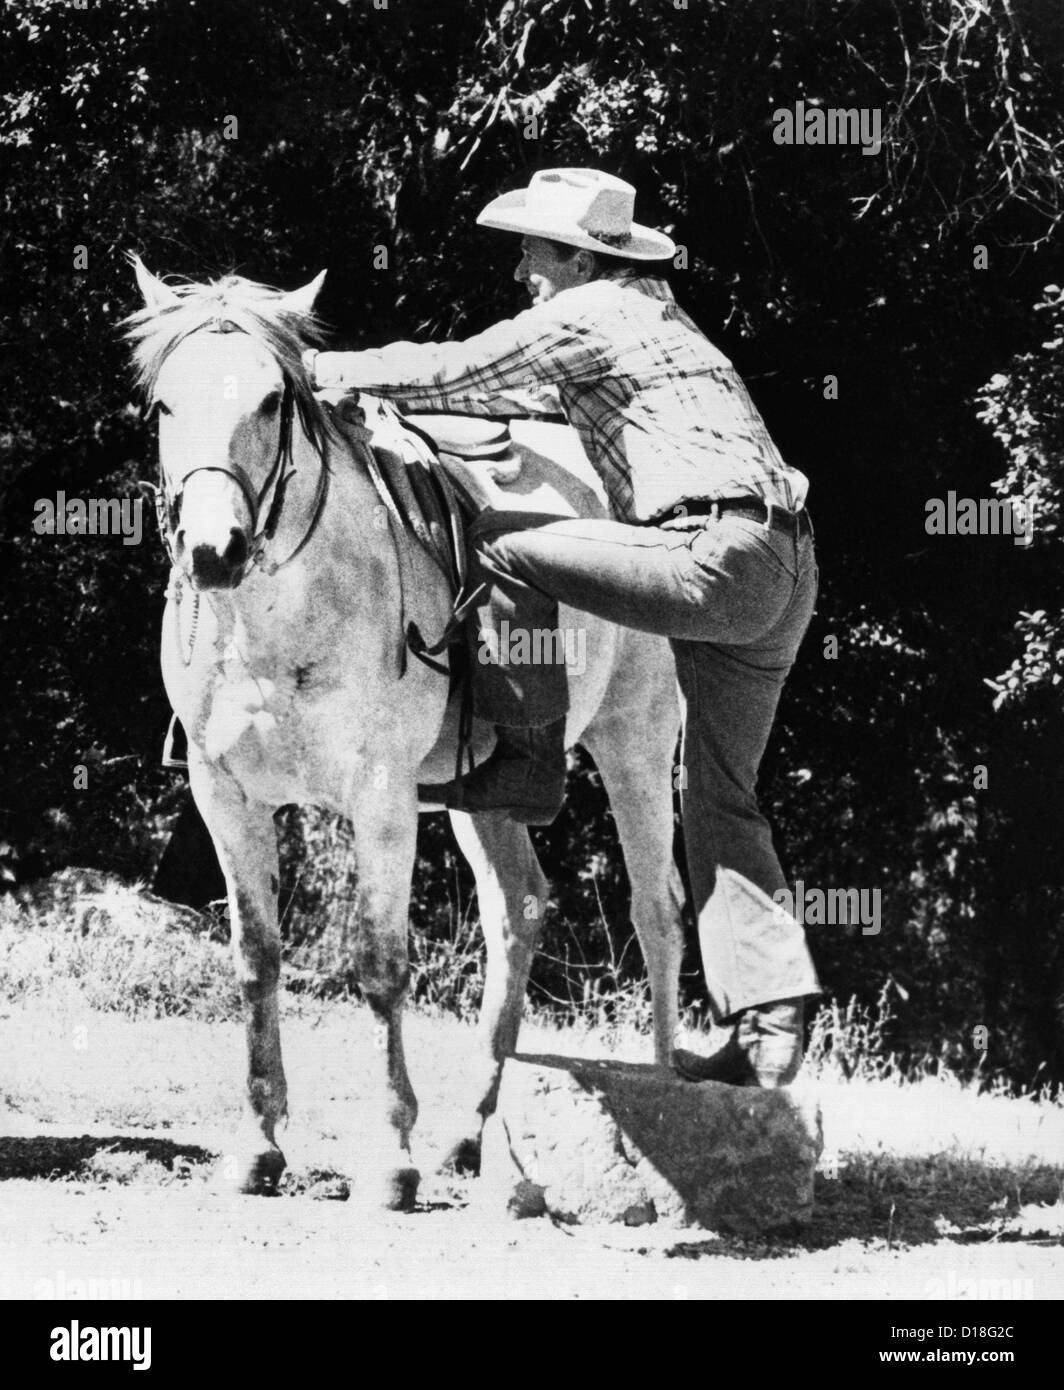 Republican Presidential candidate Ronald Reagan, getting into the saddle. July 1980. (CSU_ALPHA_440) CSU Archives/Everett - Stock Image